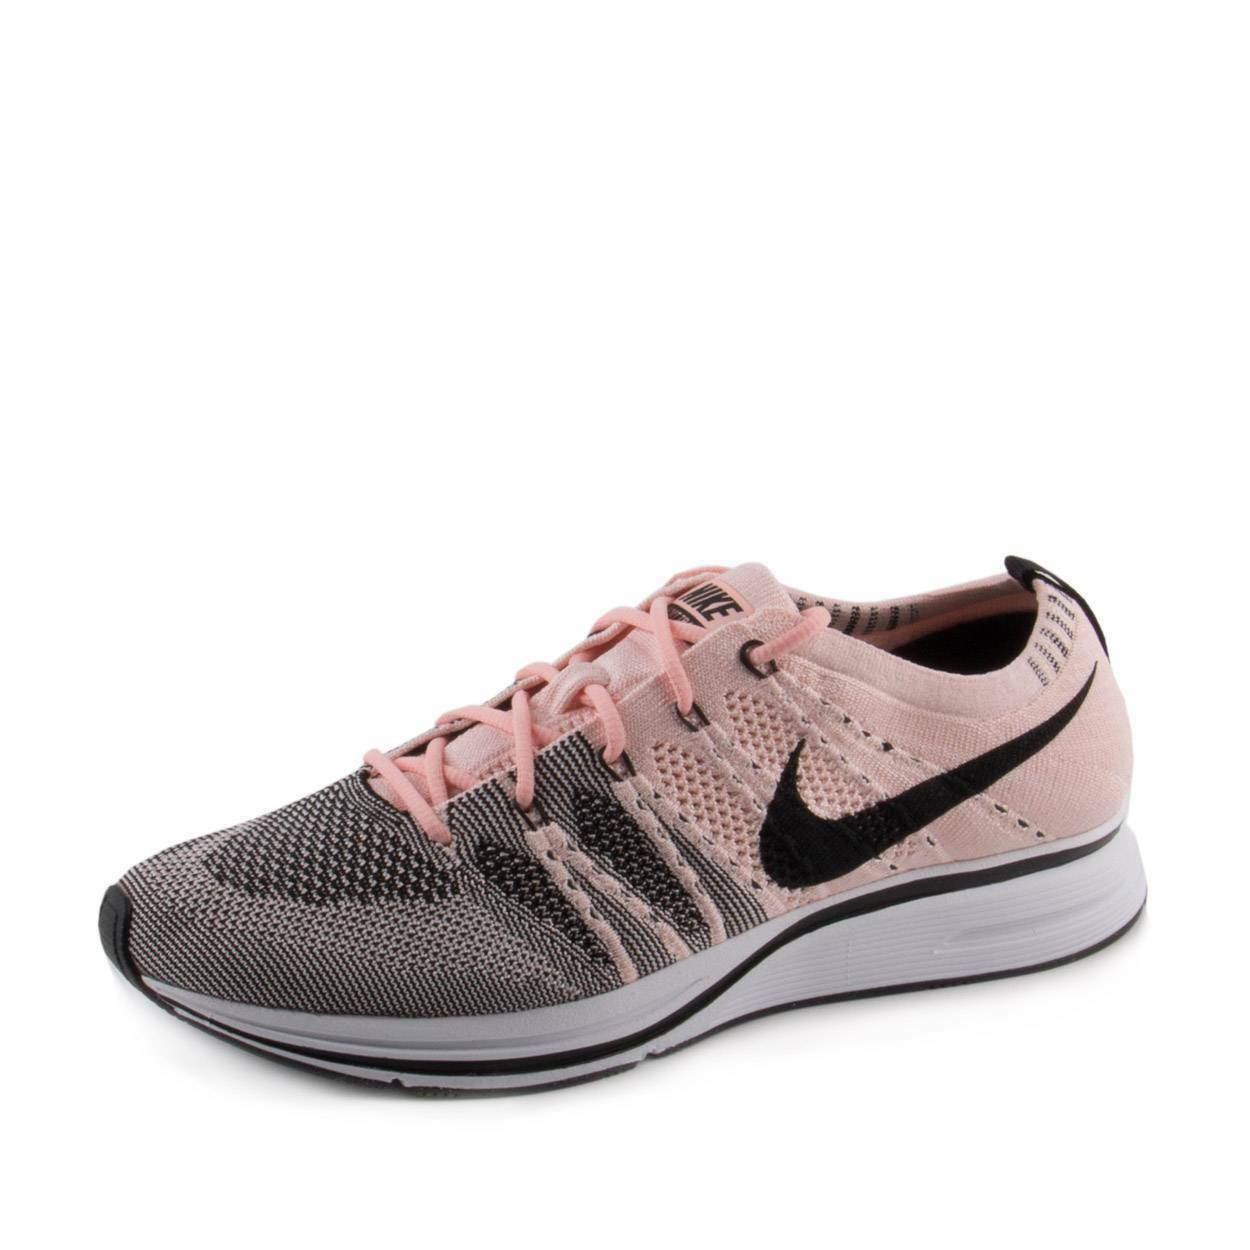 Nike Hombre Flyknit Sunset Trainer Sunset Flyknit Tinte/Negro AH8396-600 67d6af